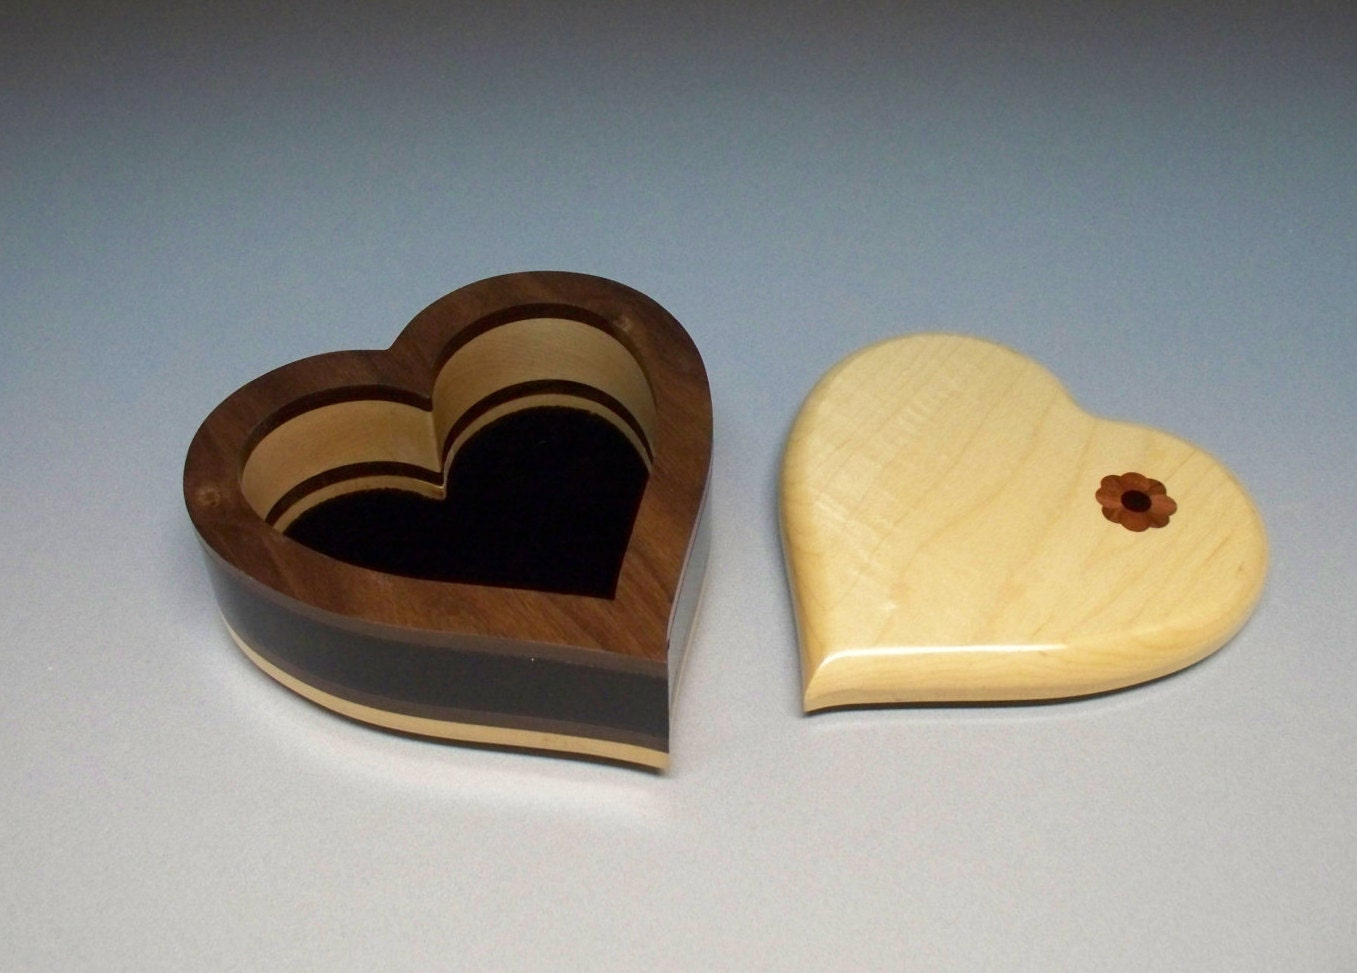 Superb img of Wooden Heart Shaped Jewelry Box With Inlay by CrownWoodcrafting with #A37E28 color and 1357x973 pixels